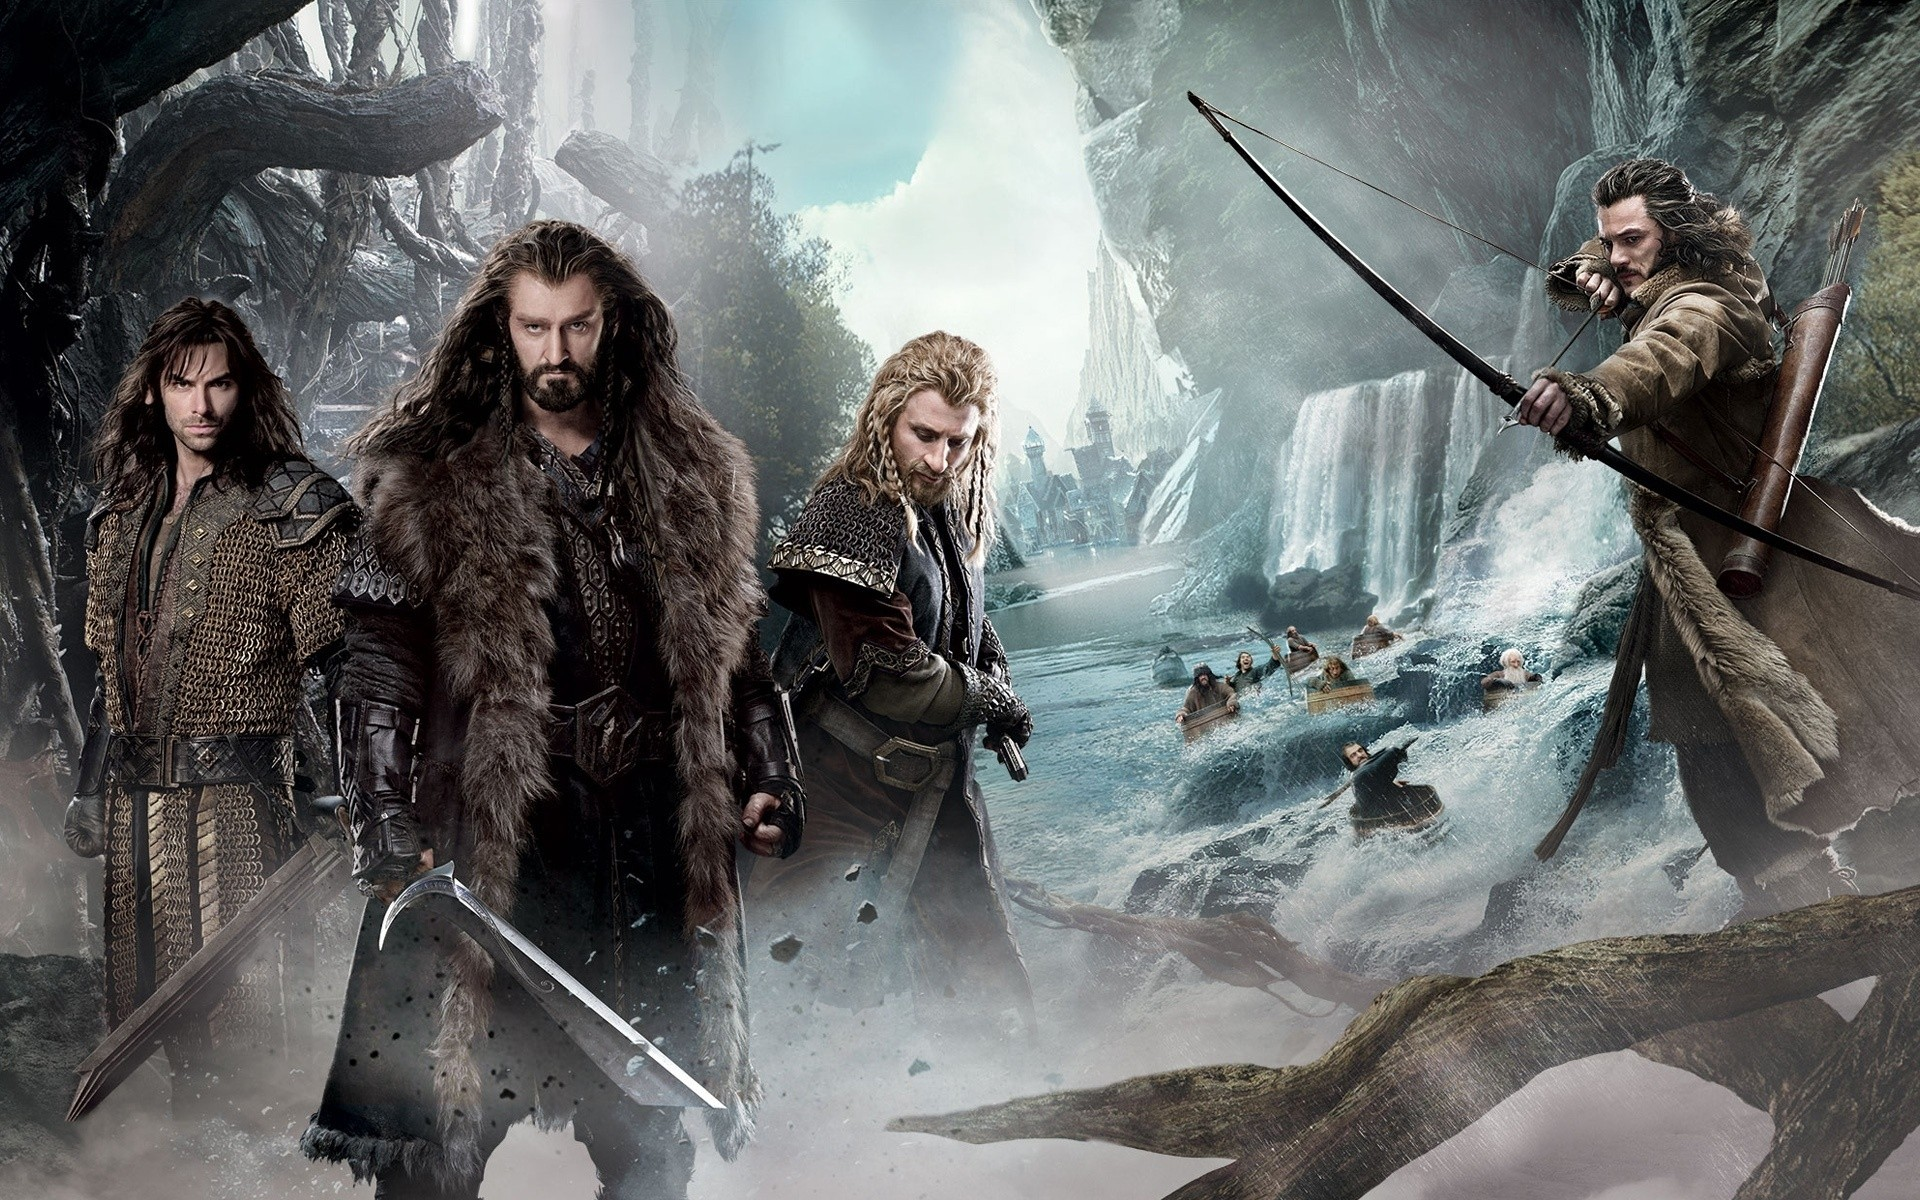 The Hobbit 2013 Iphone Wallpapers For Free